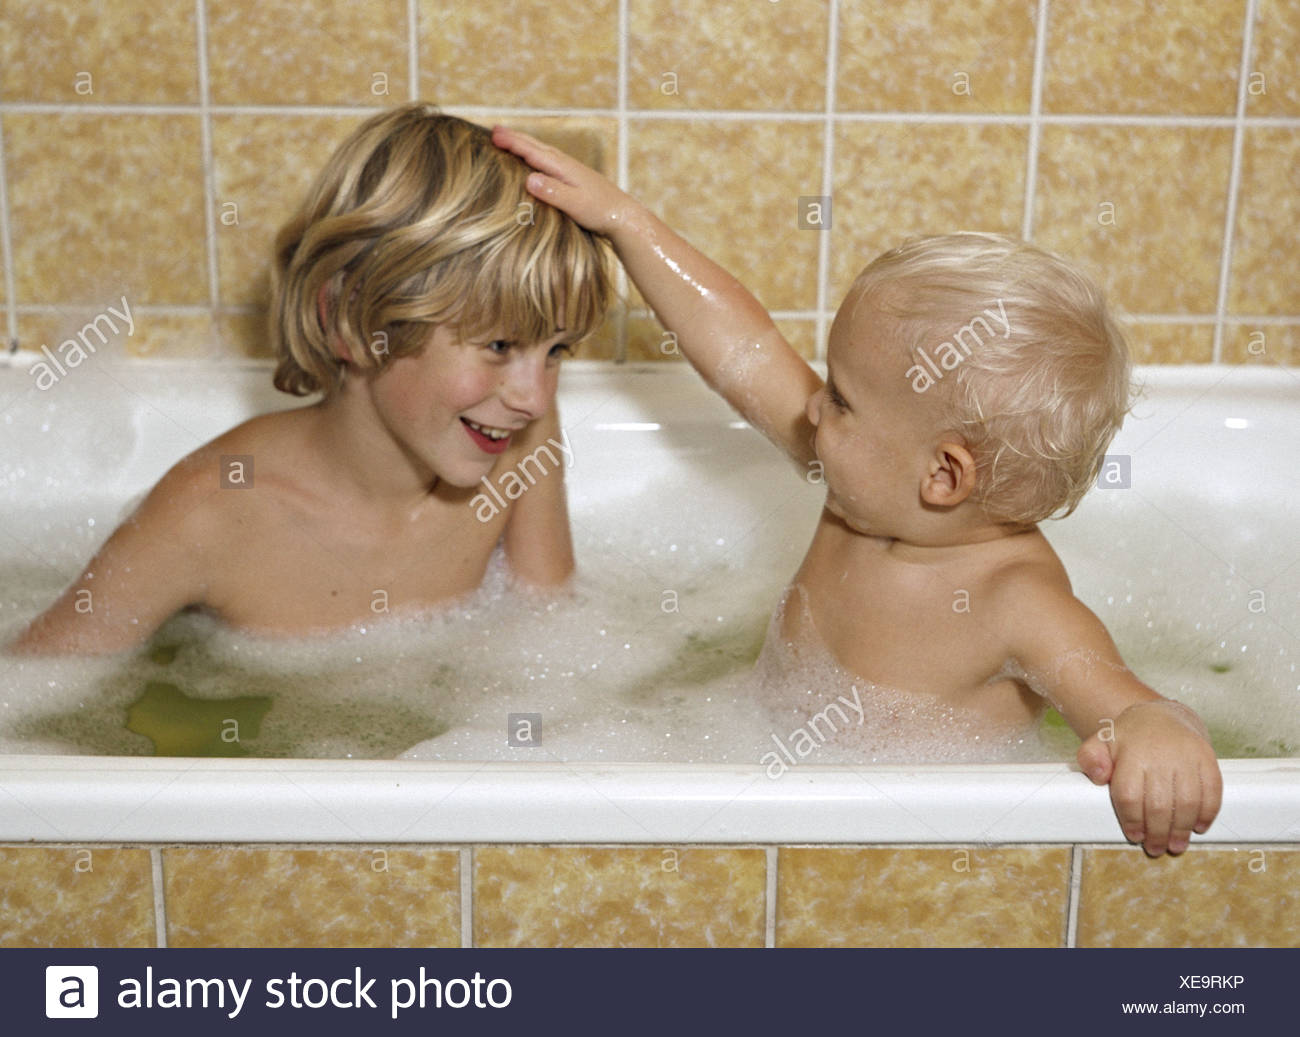 brothers in bathtub little boy with a baby taking a bath together ...